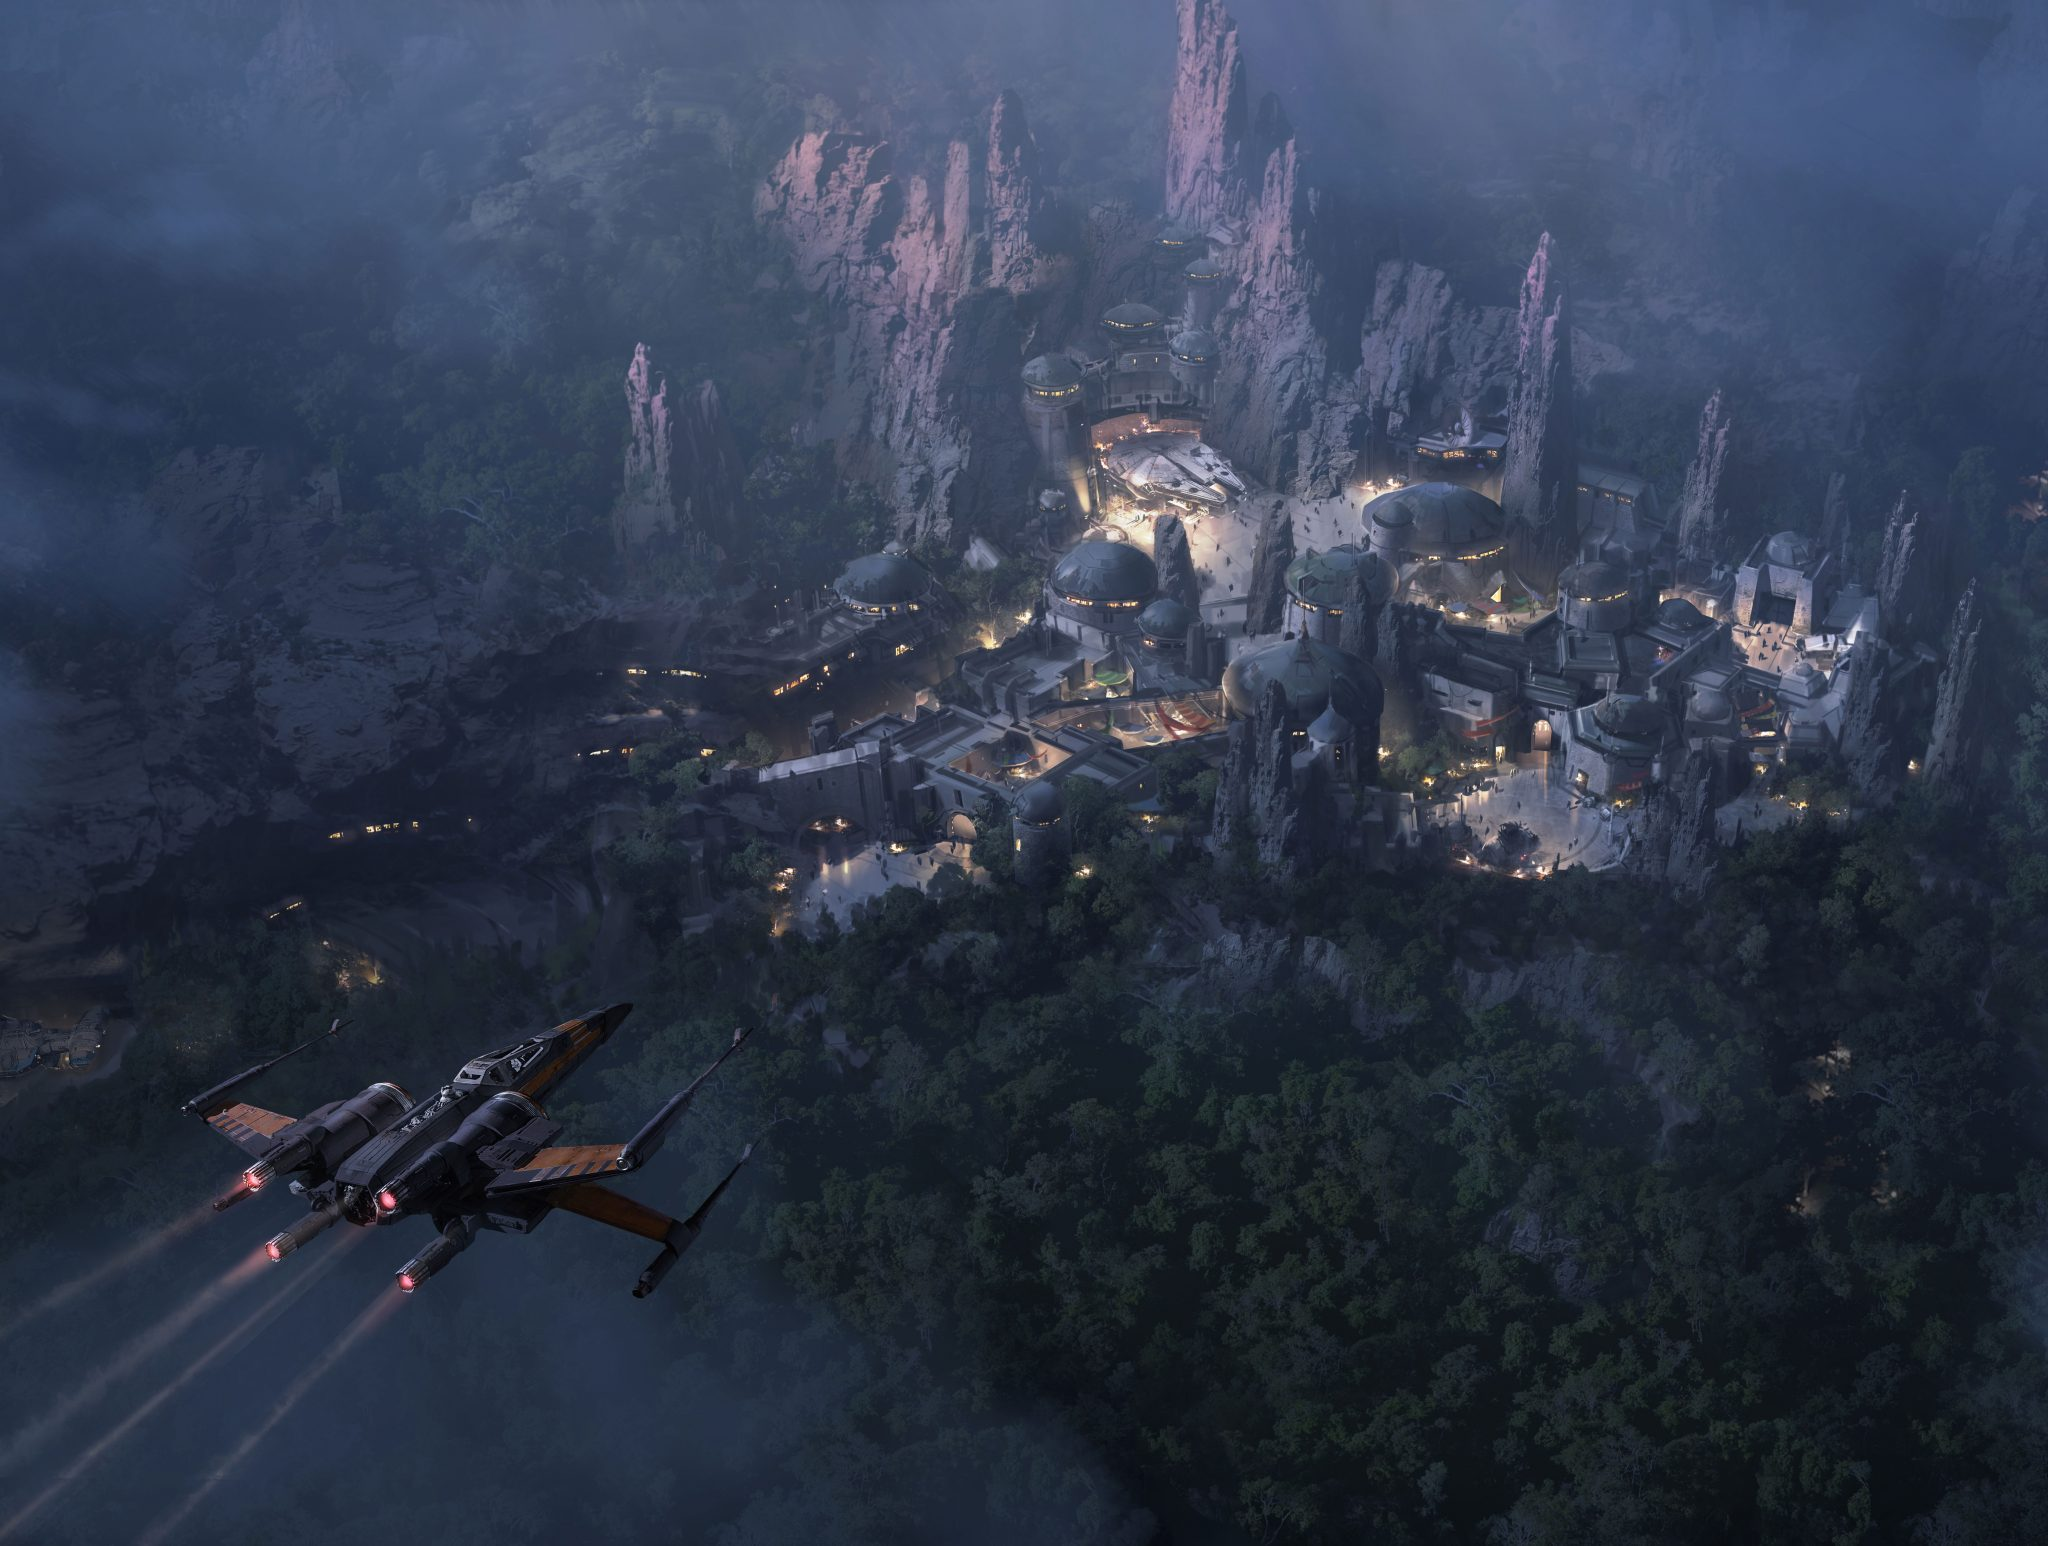 New Star Wars Land Image and New Star Tours Destination